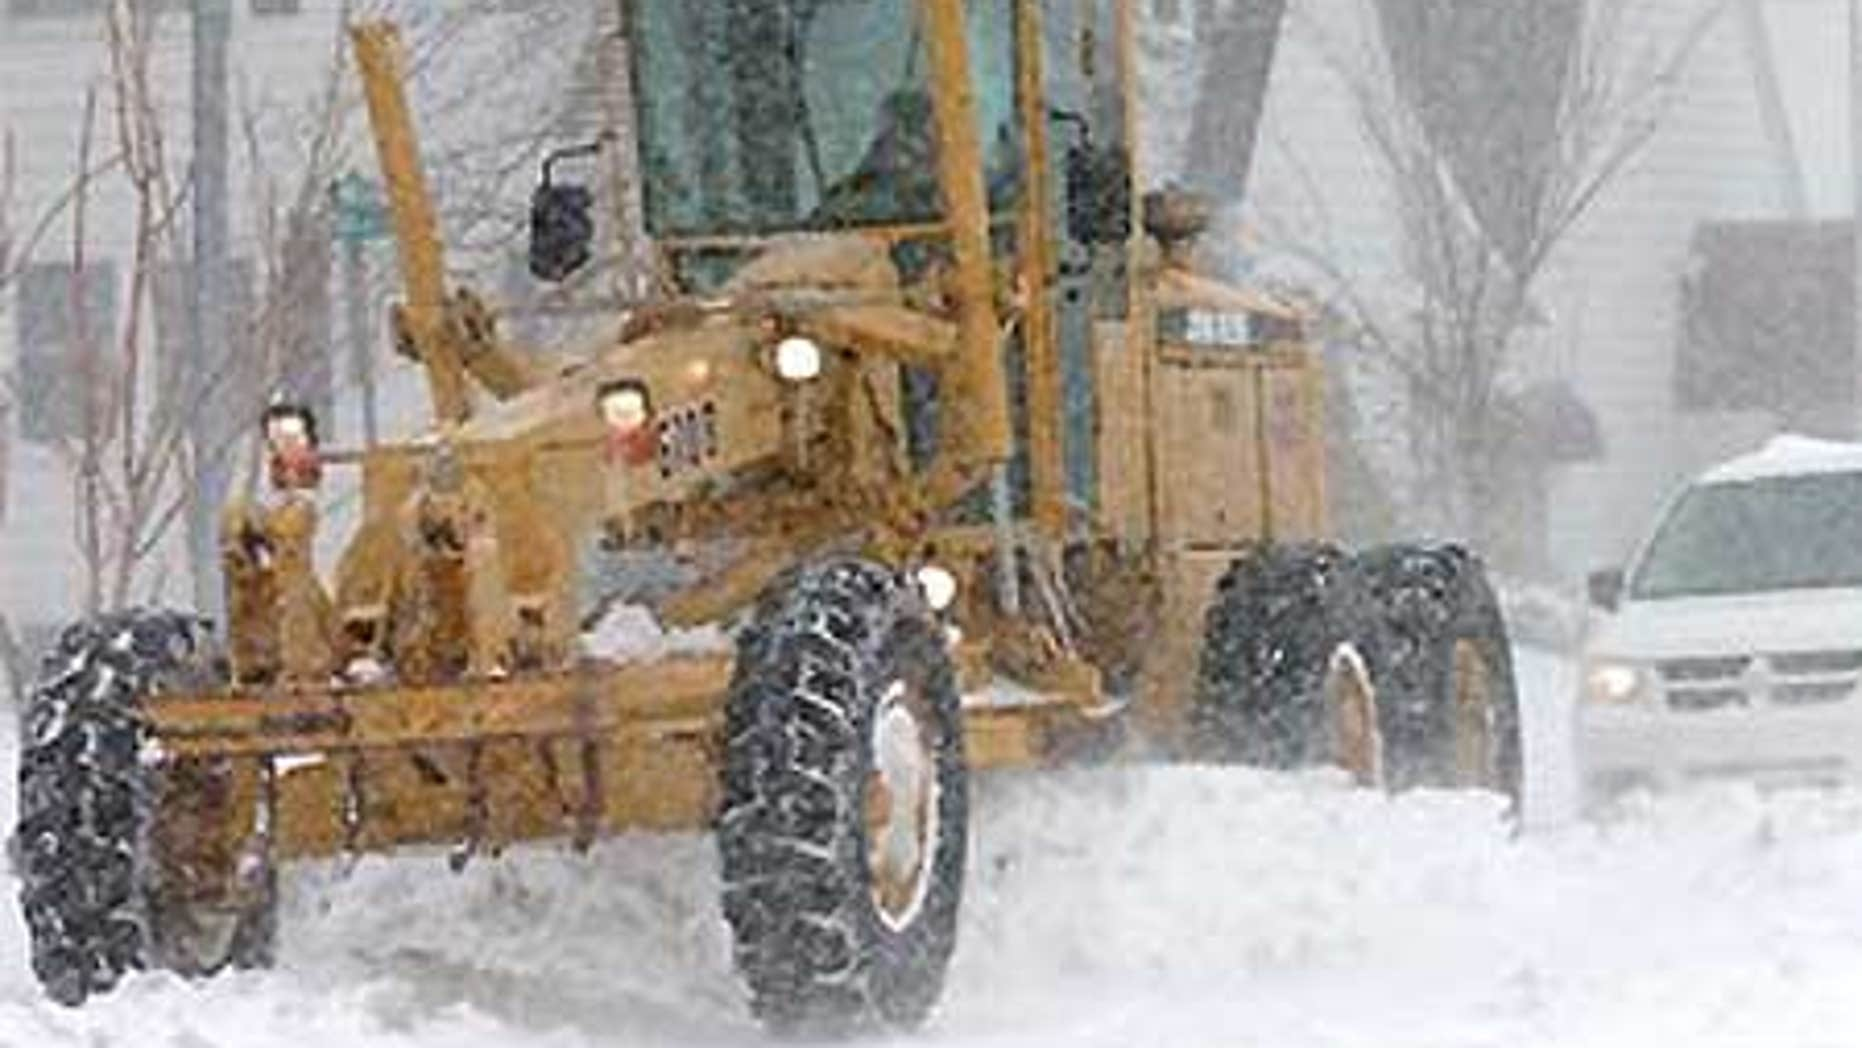 Garden City, Kansas, city employee Jim Brungardt drives a road grader to push fallen snow as snow continues to accumulate.